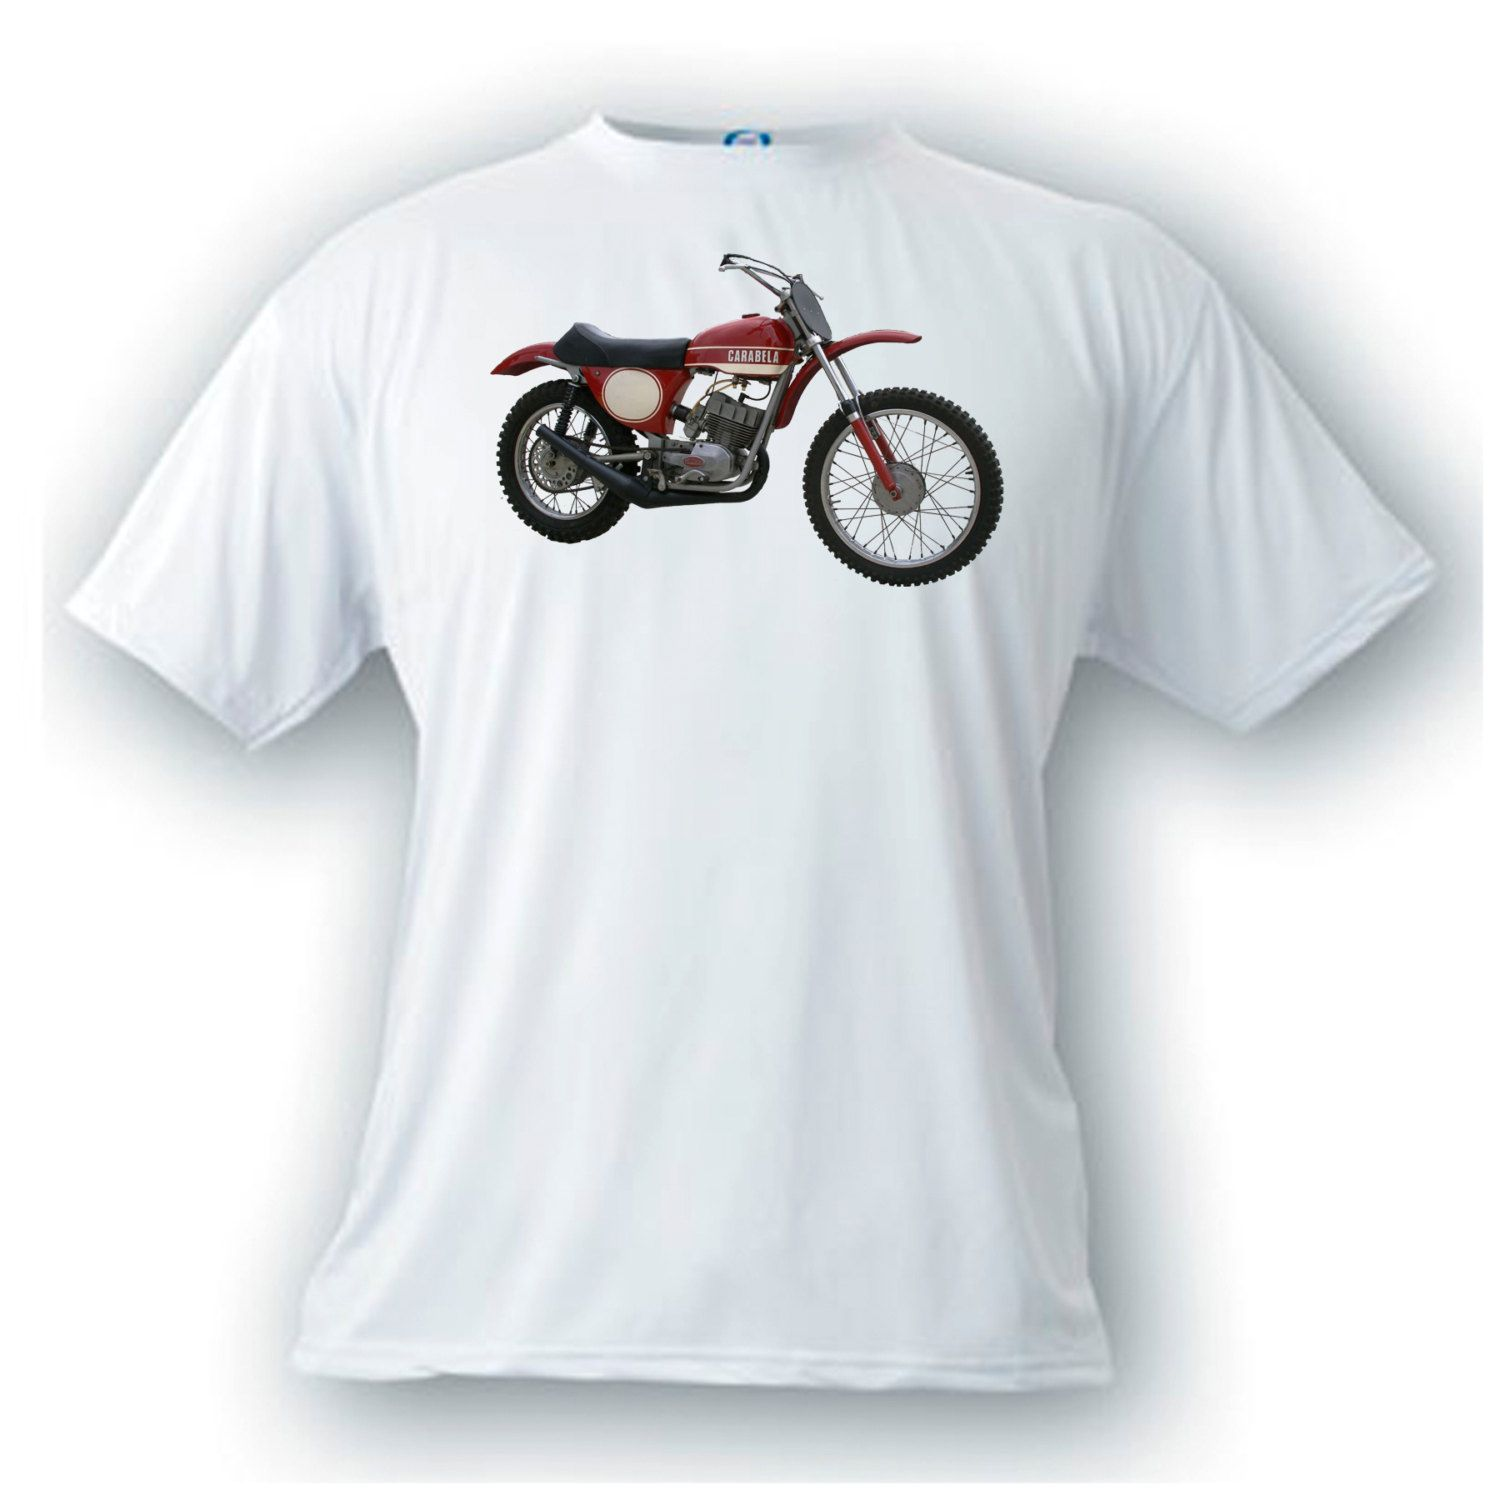 Greeves carabela vintage image motorcycle t-shirt by artonstuffdesigns on Etsy